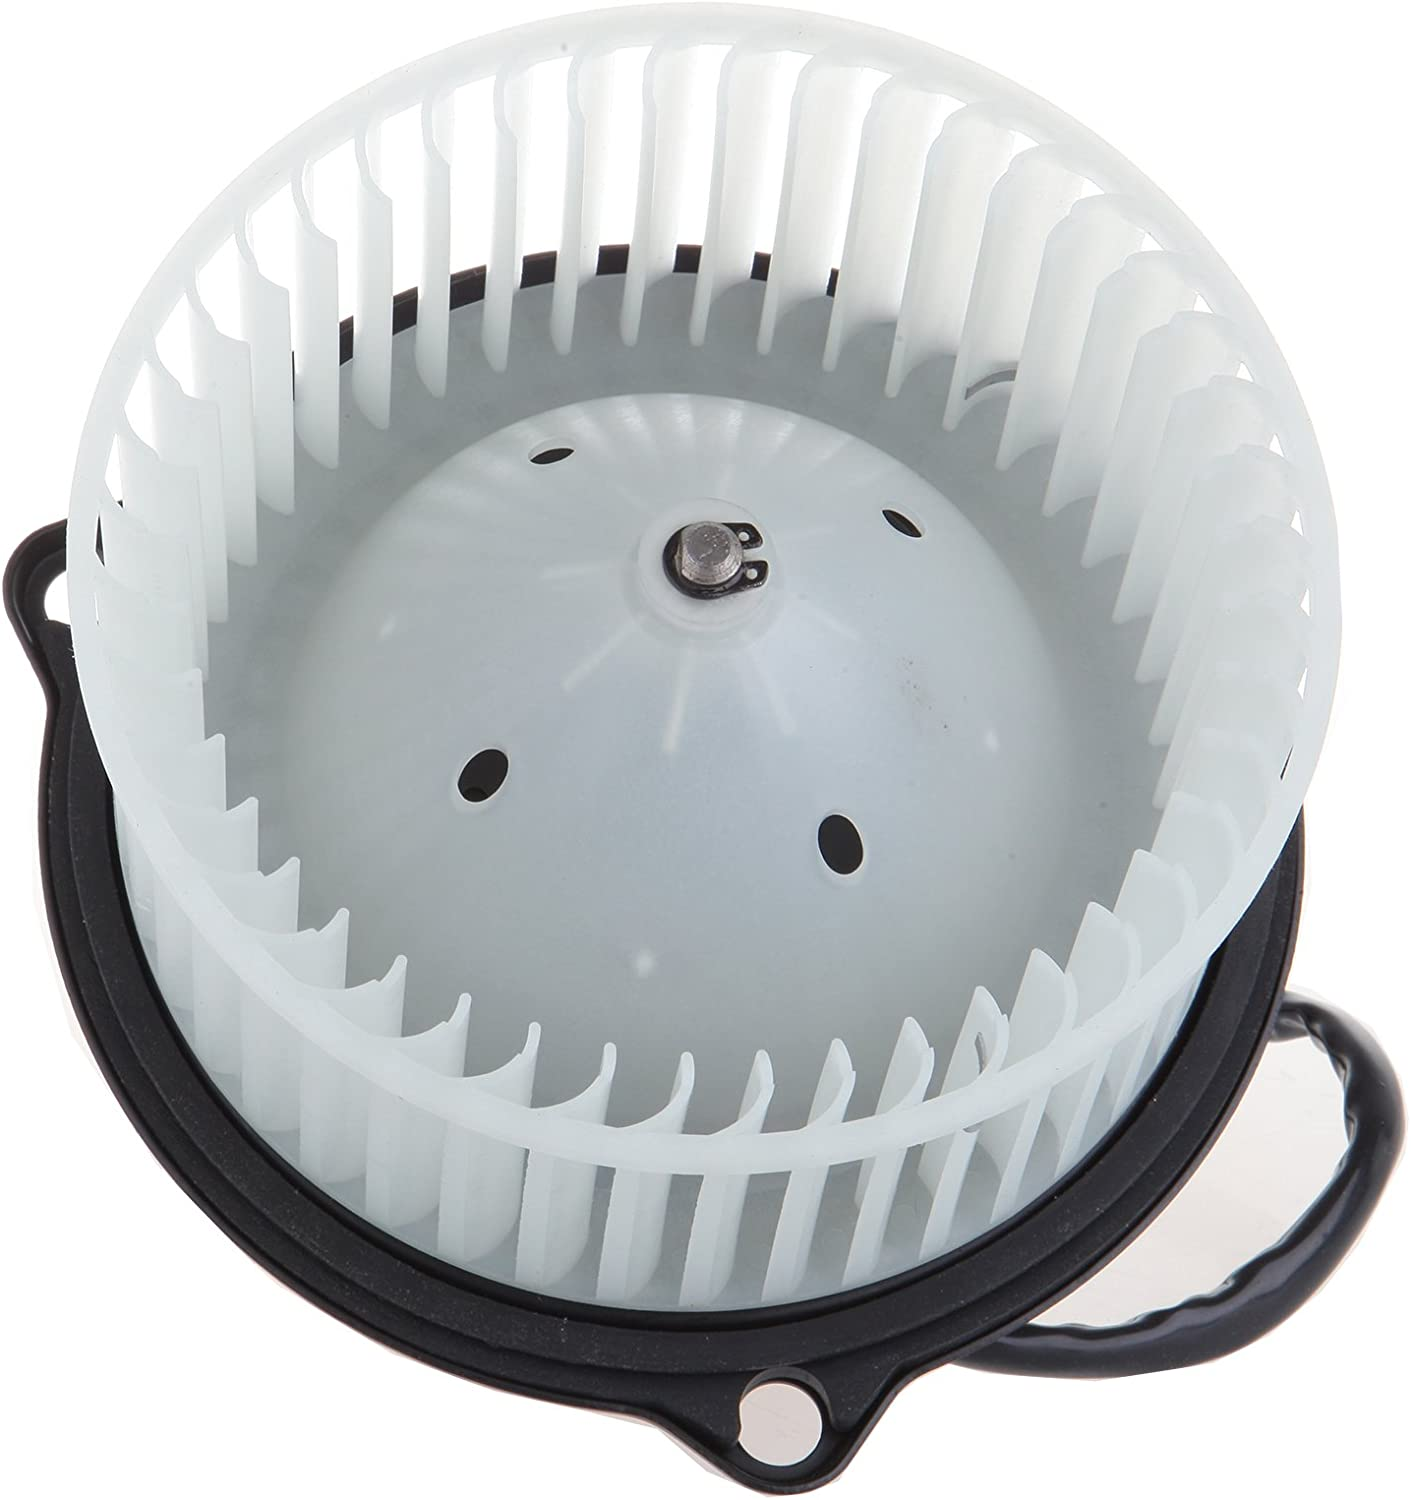 OCPTY A C Heater Blower Motor New item ABS Cage w Air Conditioning Fan HV Limited time sale